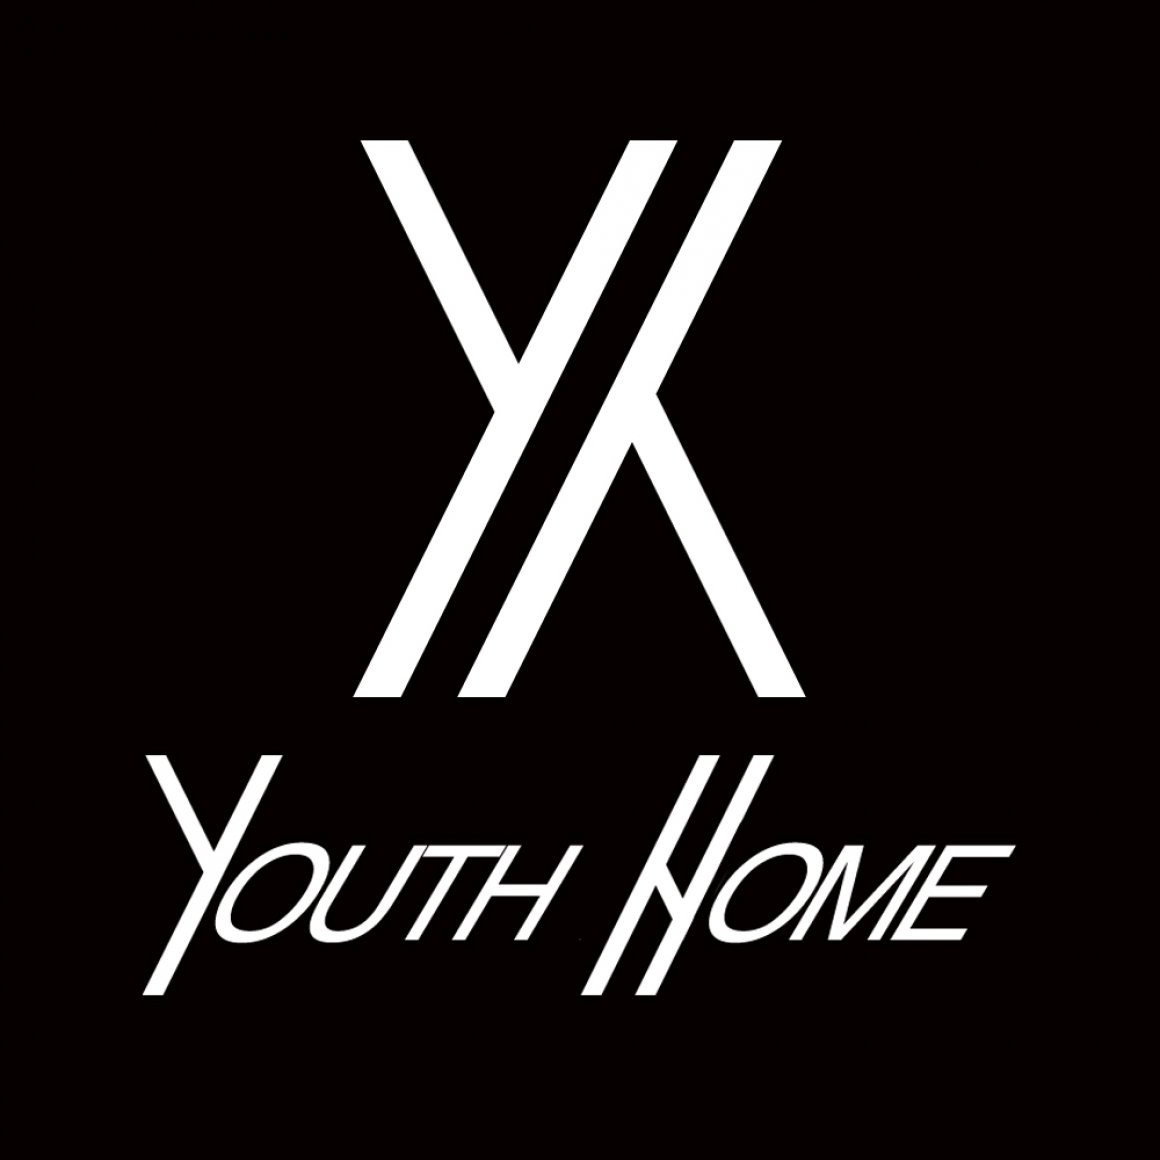 YouthHomeLogo